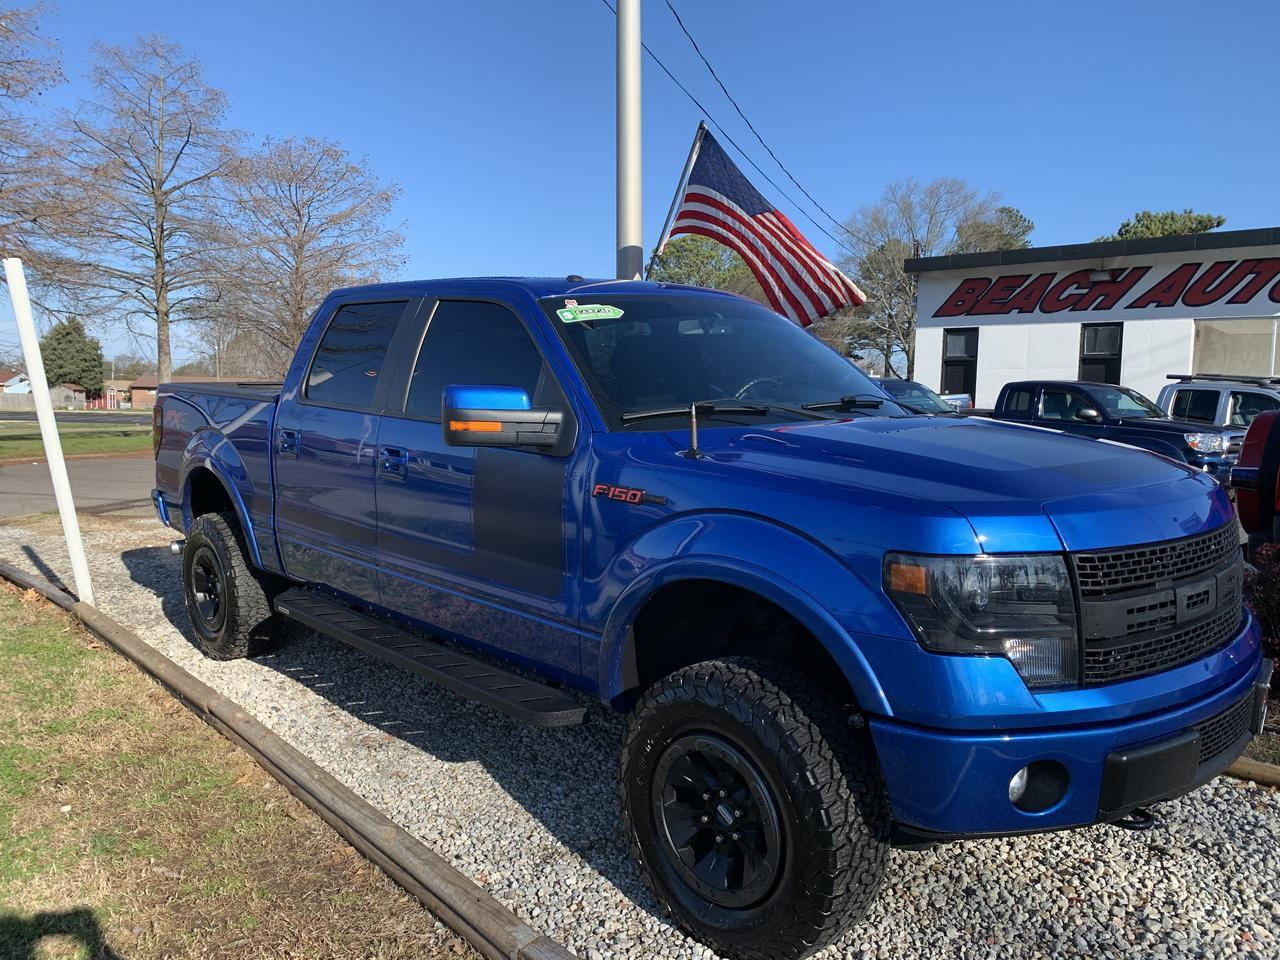 2013 FORD F-150 FX4 PREMIUM SUPERCREW 4X4, RAPTOR WHEELS, WARRANTY, NAVIGATION, SUNROOF, HEATED/COOLED LEATHER SEATS Norfolk VA